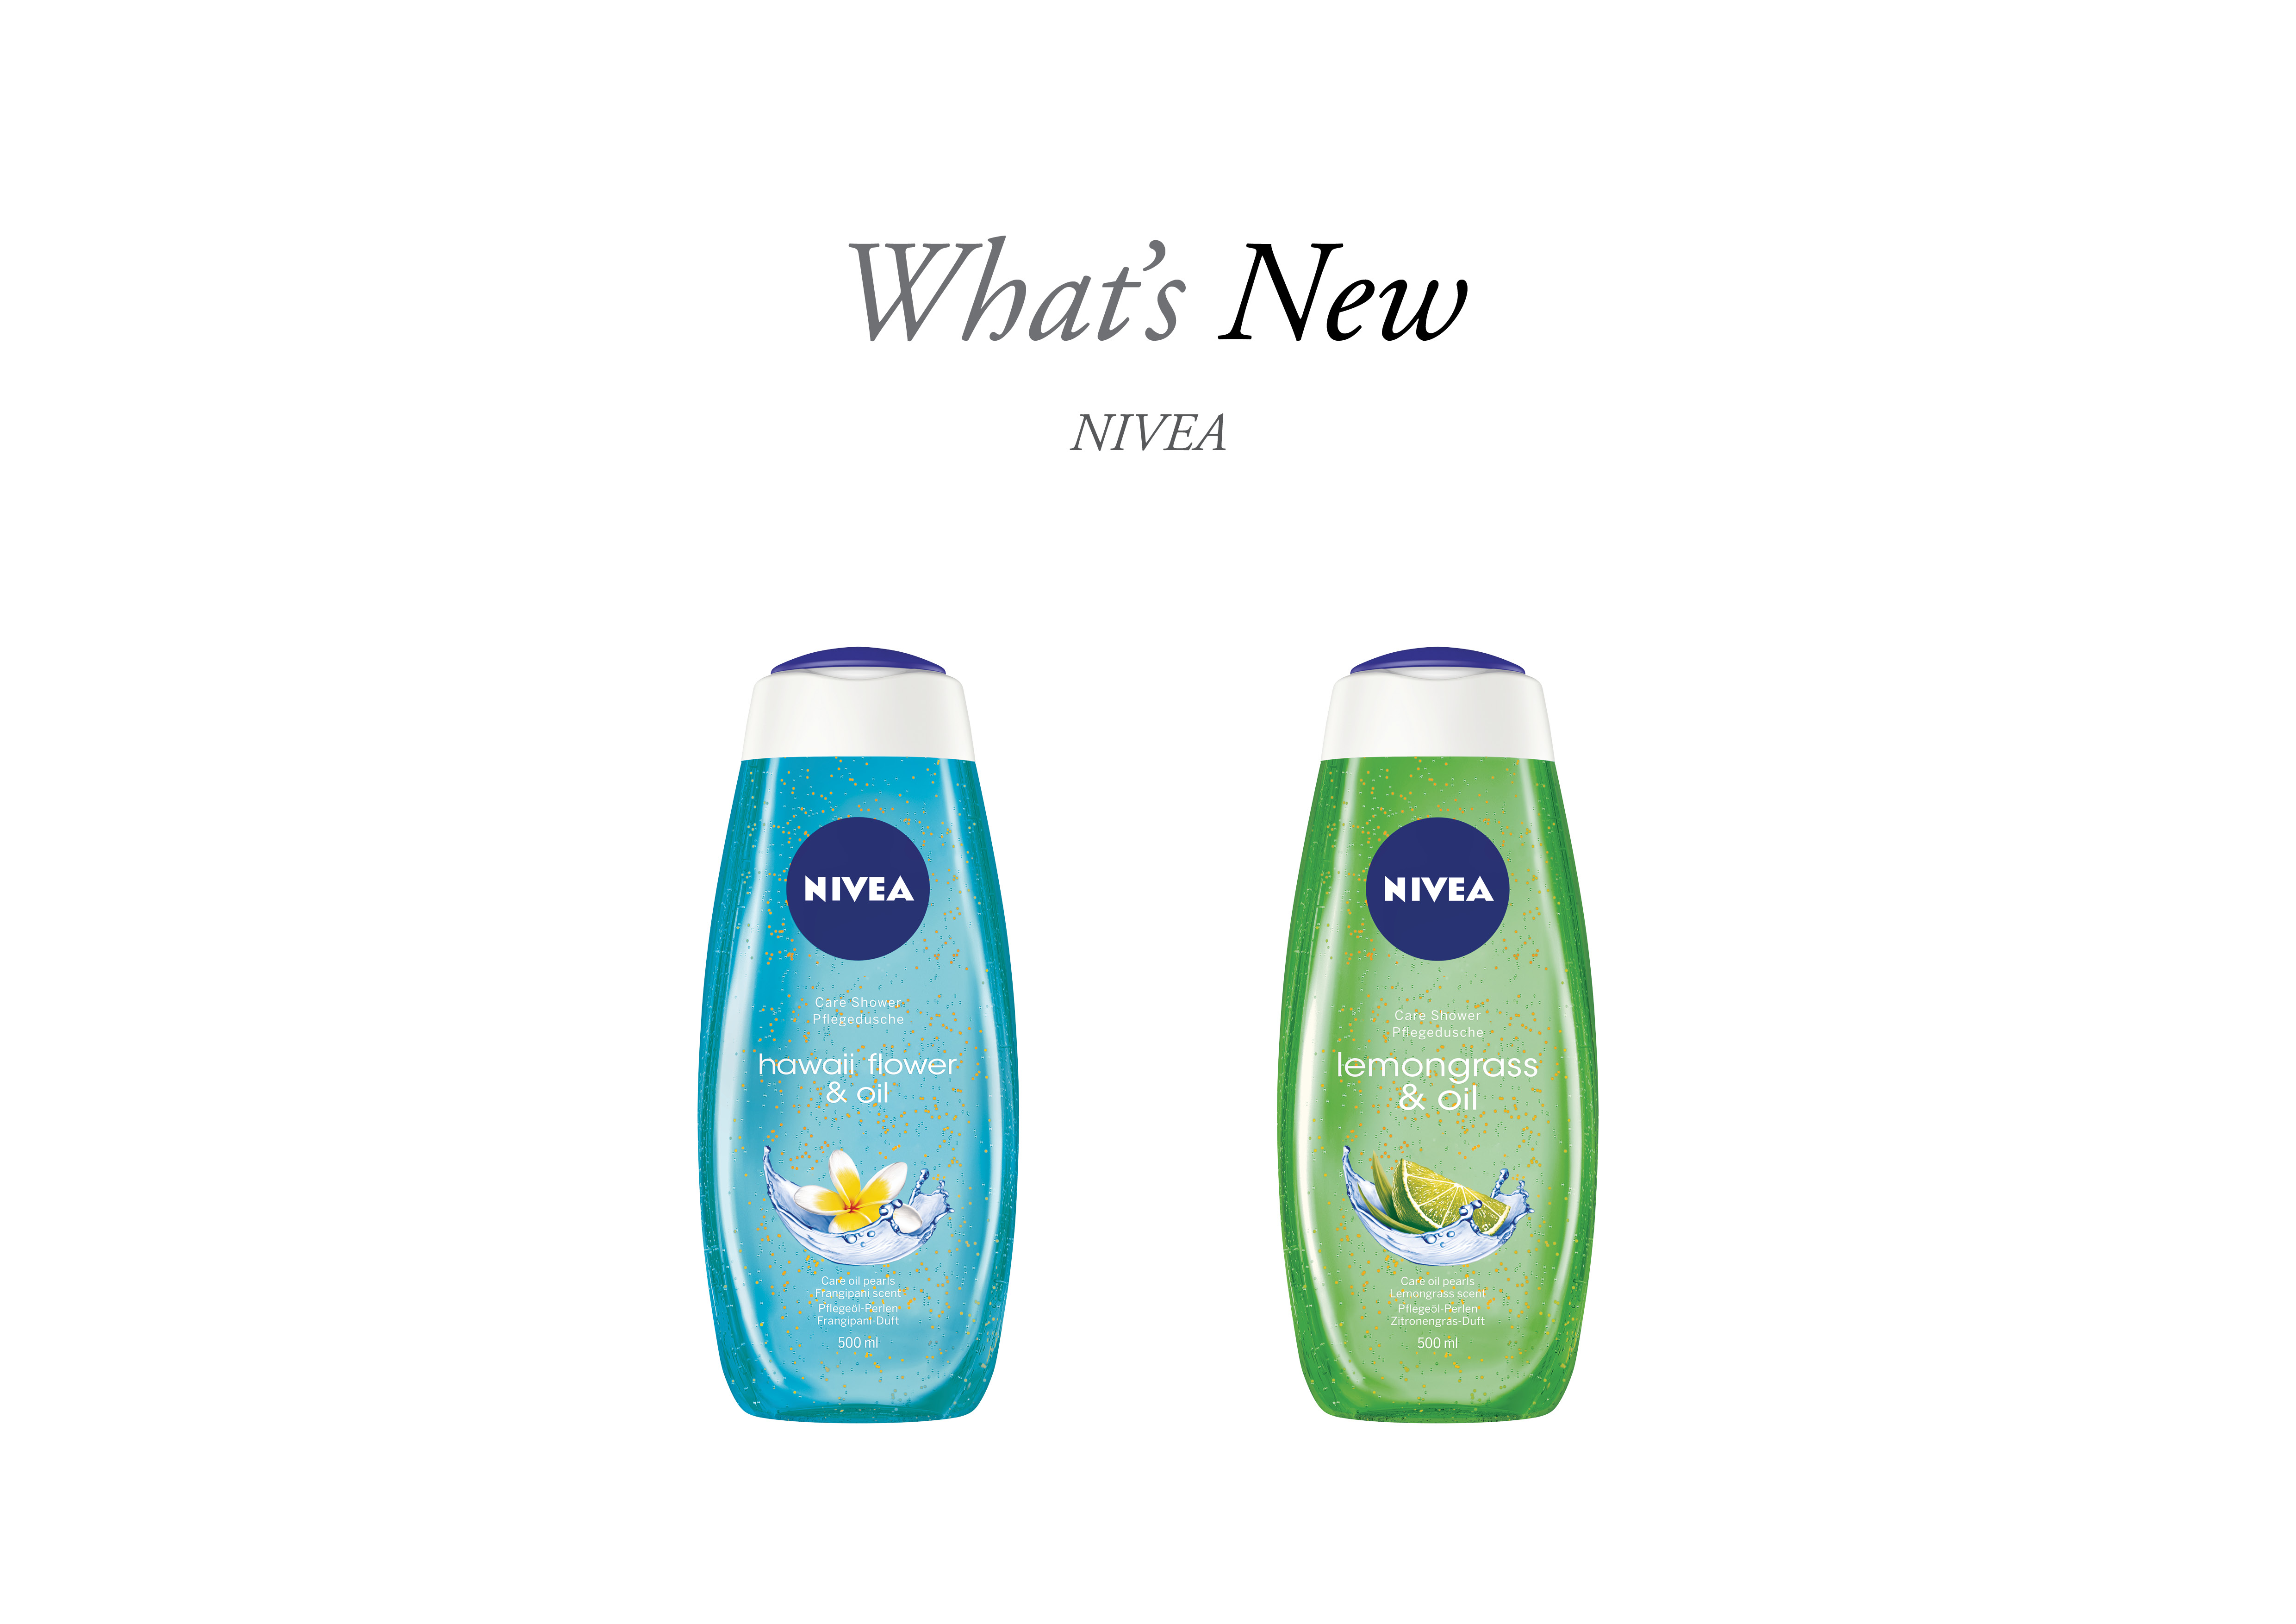 Nivea Shower Gel & Oils with What's New text over head